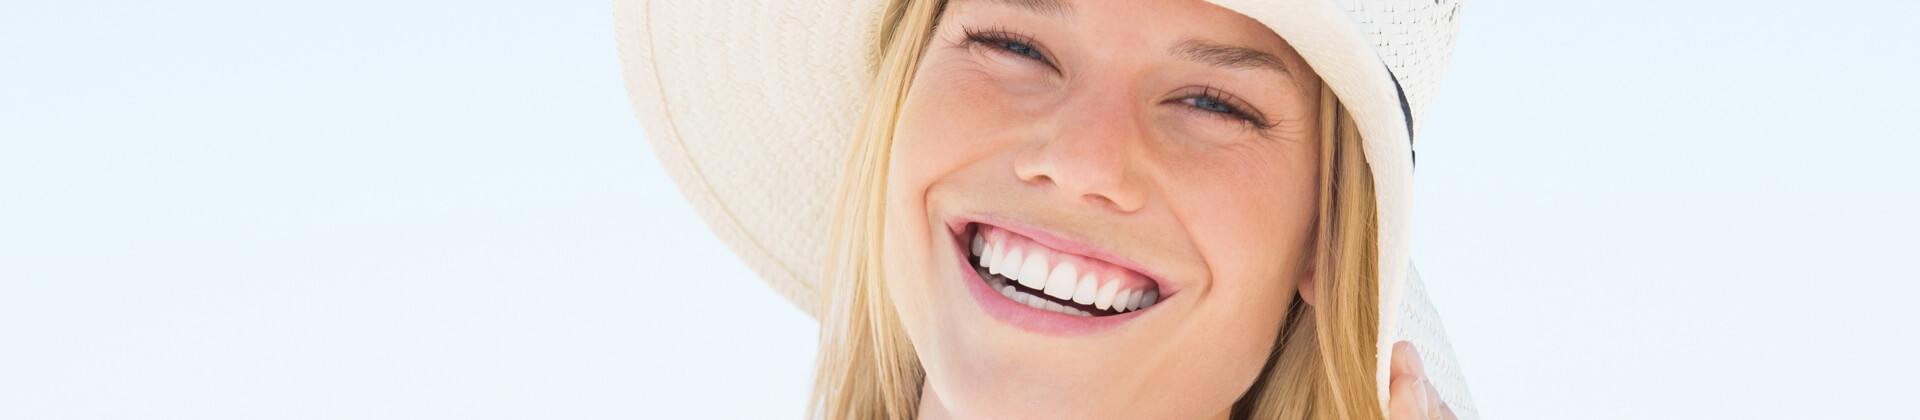 Restorative dentistry available in Phoenix